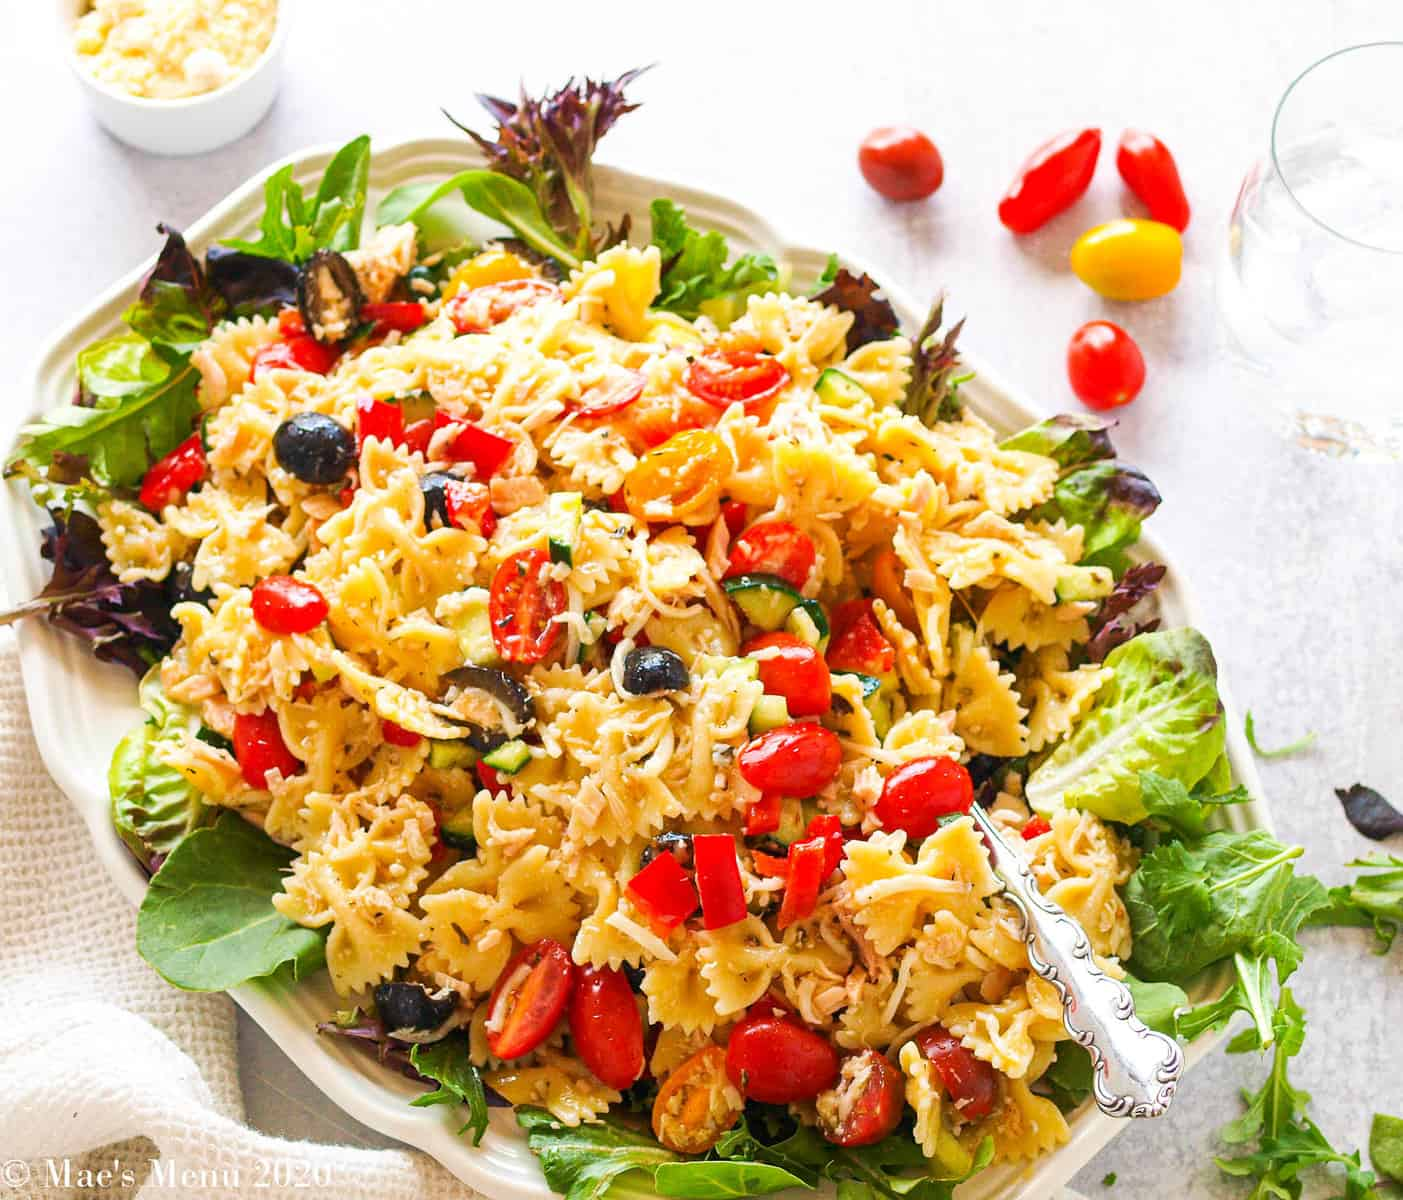 An overhead shot of a large platter of Italian Tuna Pasta salad with tomatoes, a glass of water, and a cup of cheese next to the platter.